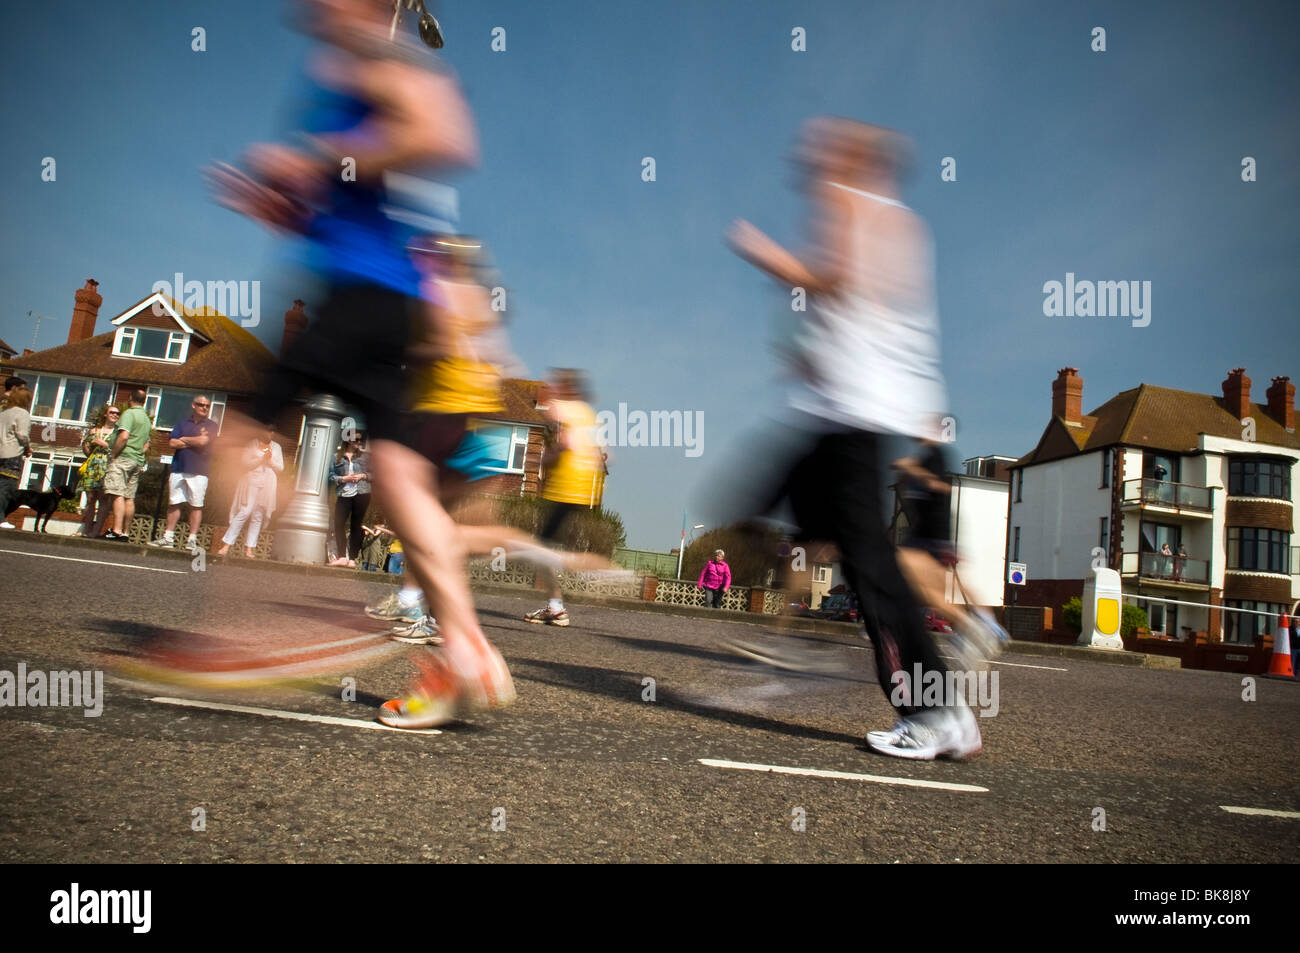 Blurred runners taking part in the first Brighton Marathon April 2010, Hove, East Sussex, UK - Stock Image